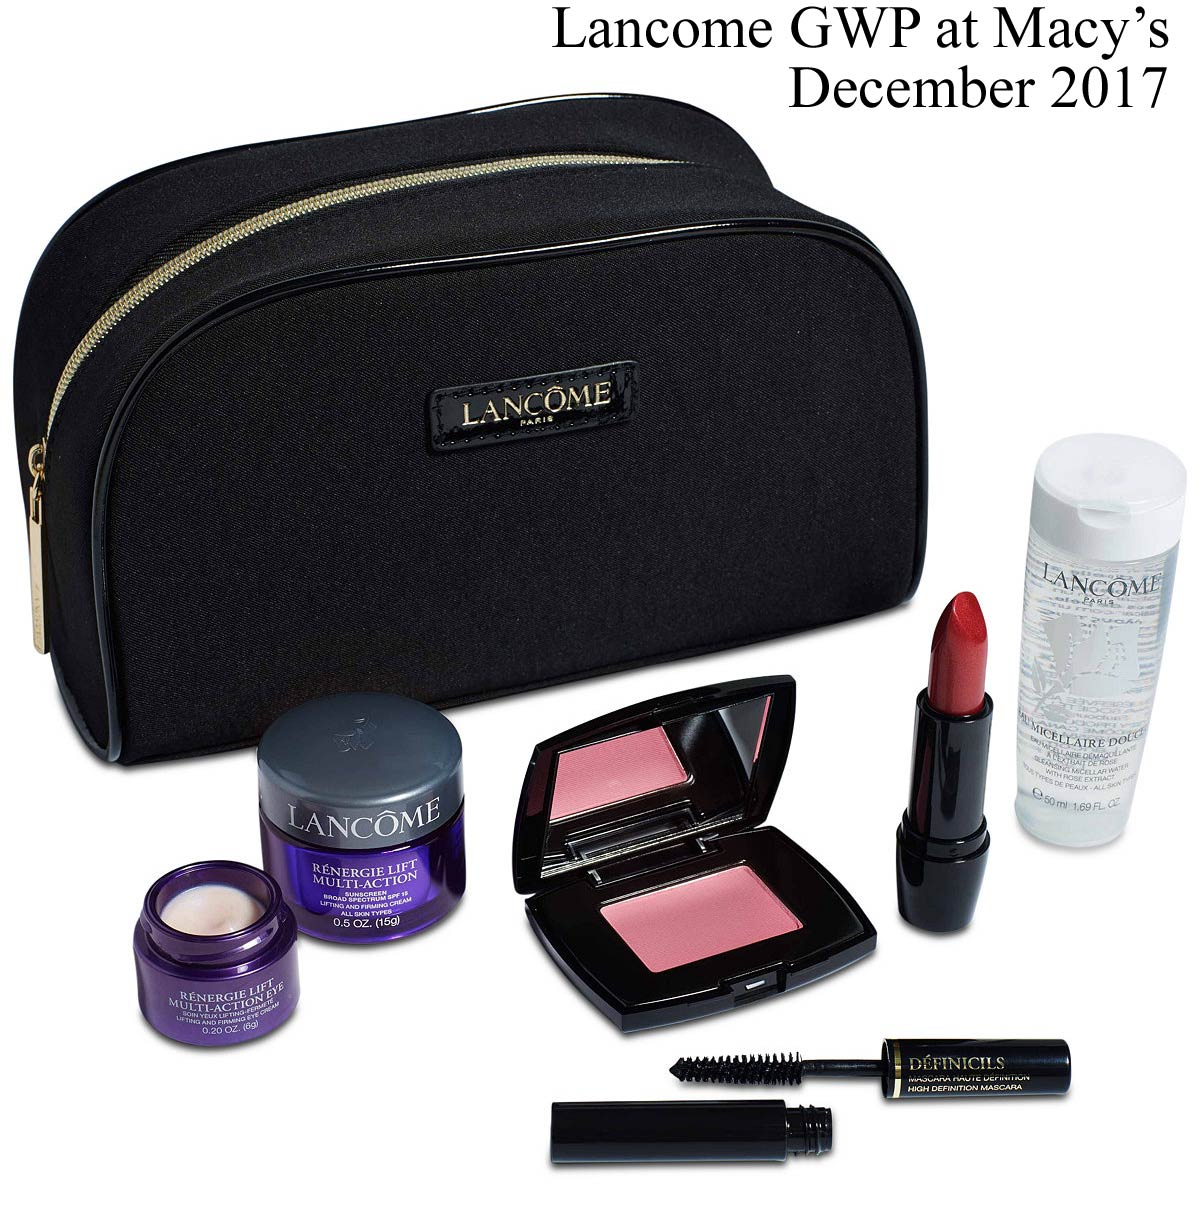 Lancome has a wide range of eye shadows, eyeliners, lipsticks and glosses, makeup brushes and nail polishes. For a look that will highlight your eyes, try a daring eye .